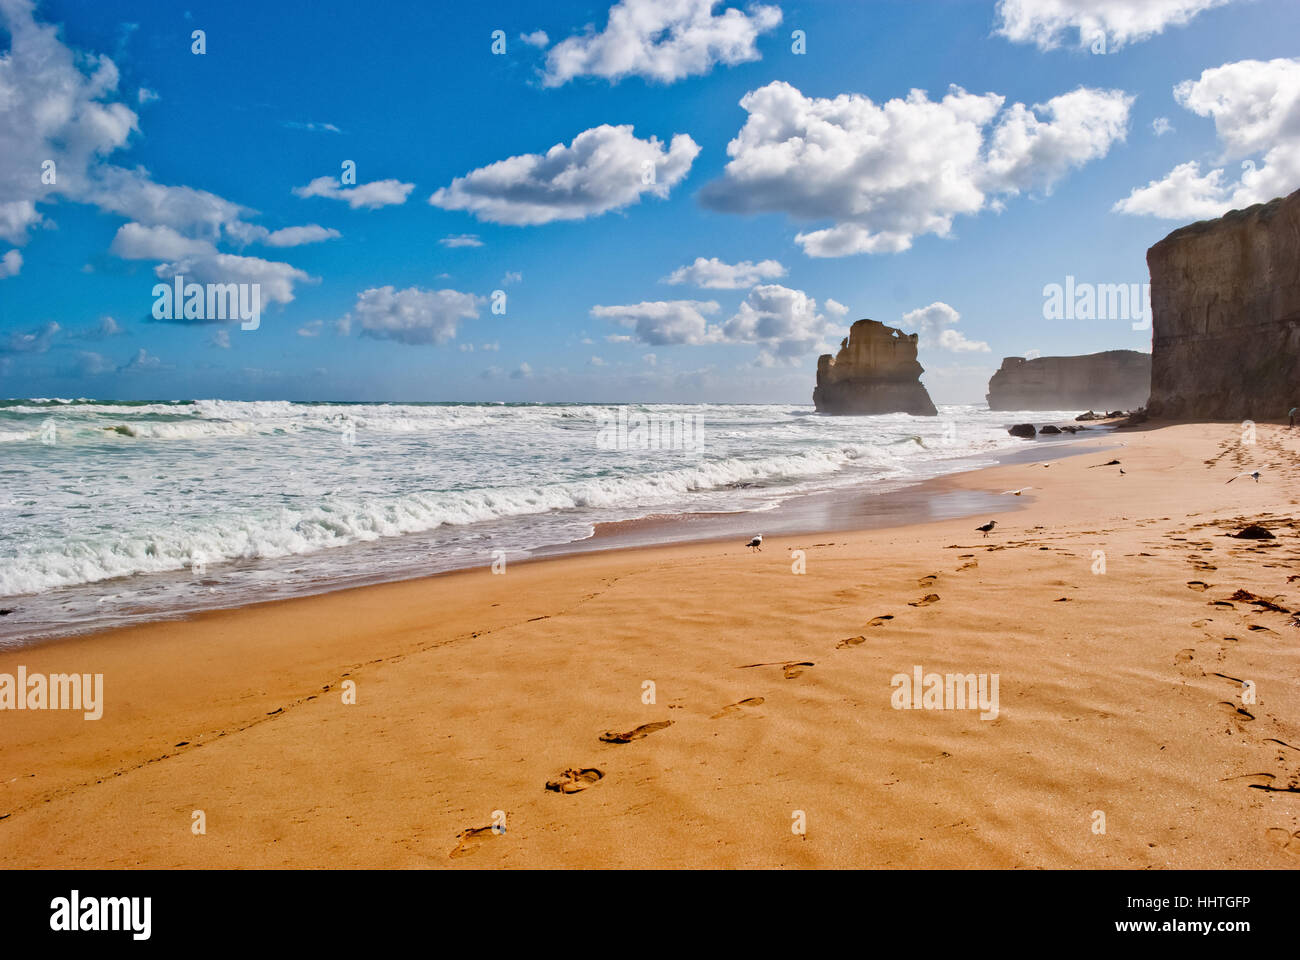 Twelve Apostles, Great Ocean Road, Australia - Stock Image